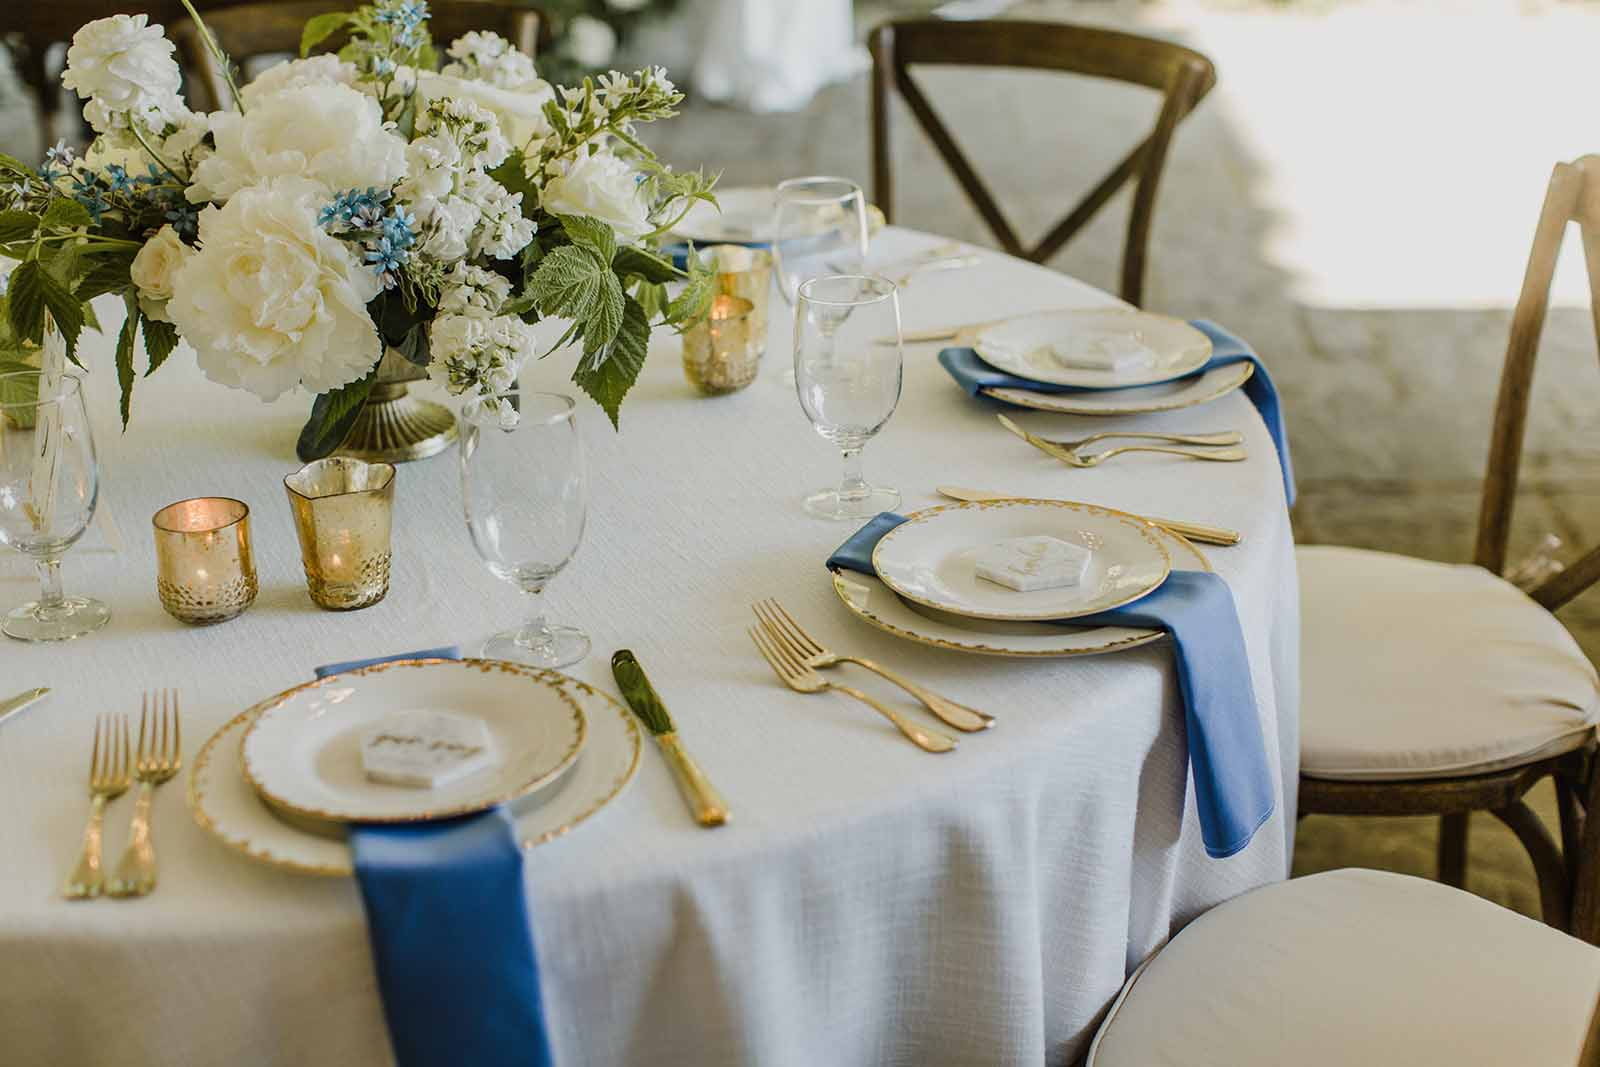 Cream and blue wedding reception with gold compote arrangements, designed by Flora Nova Design, Seattle.